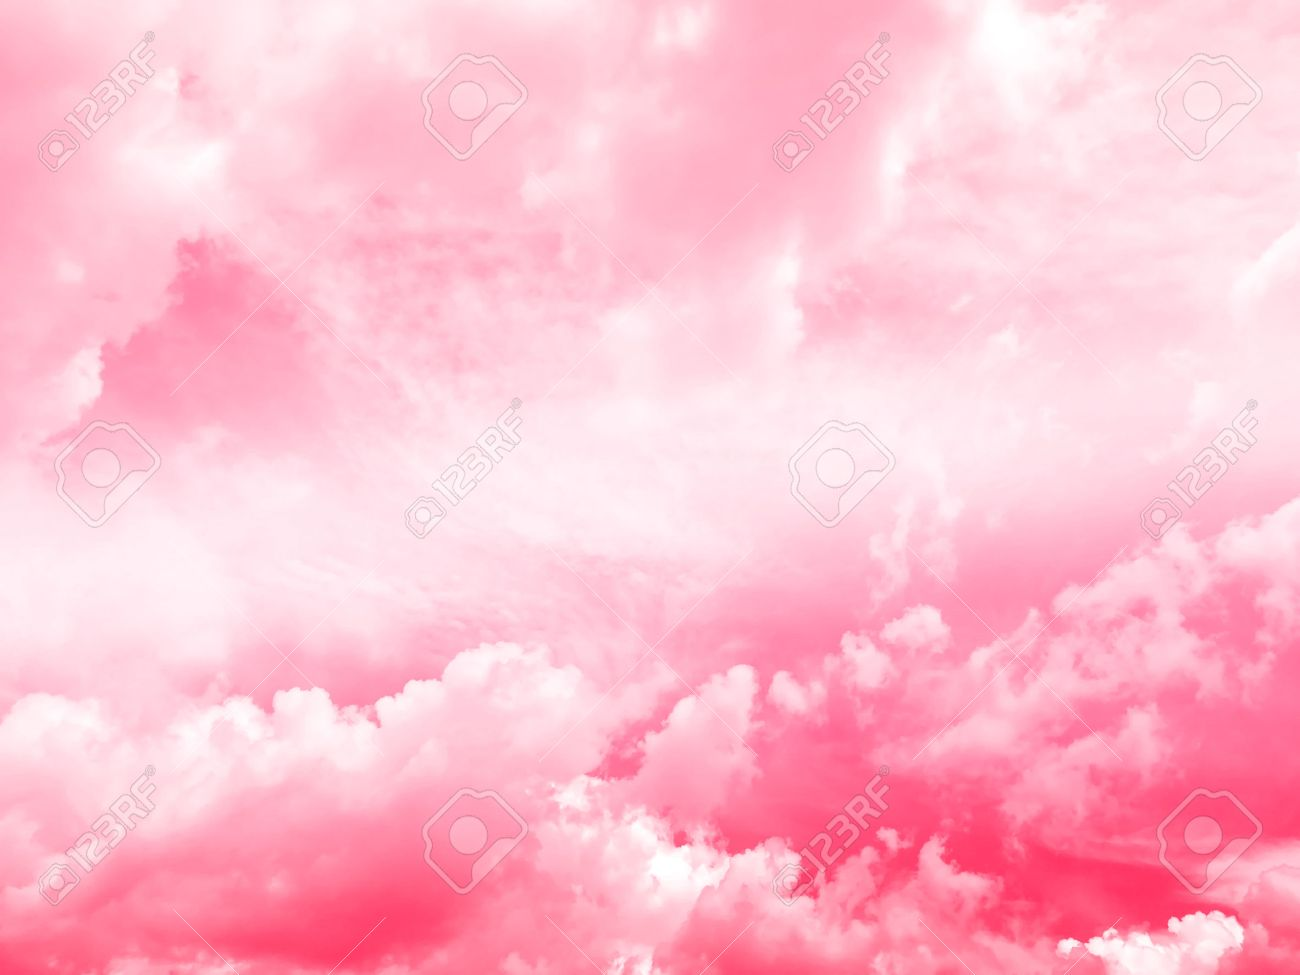 sky and cloud background, pink gradient colors Stock Photo - 60488069